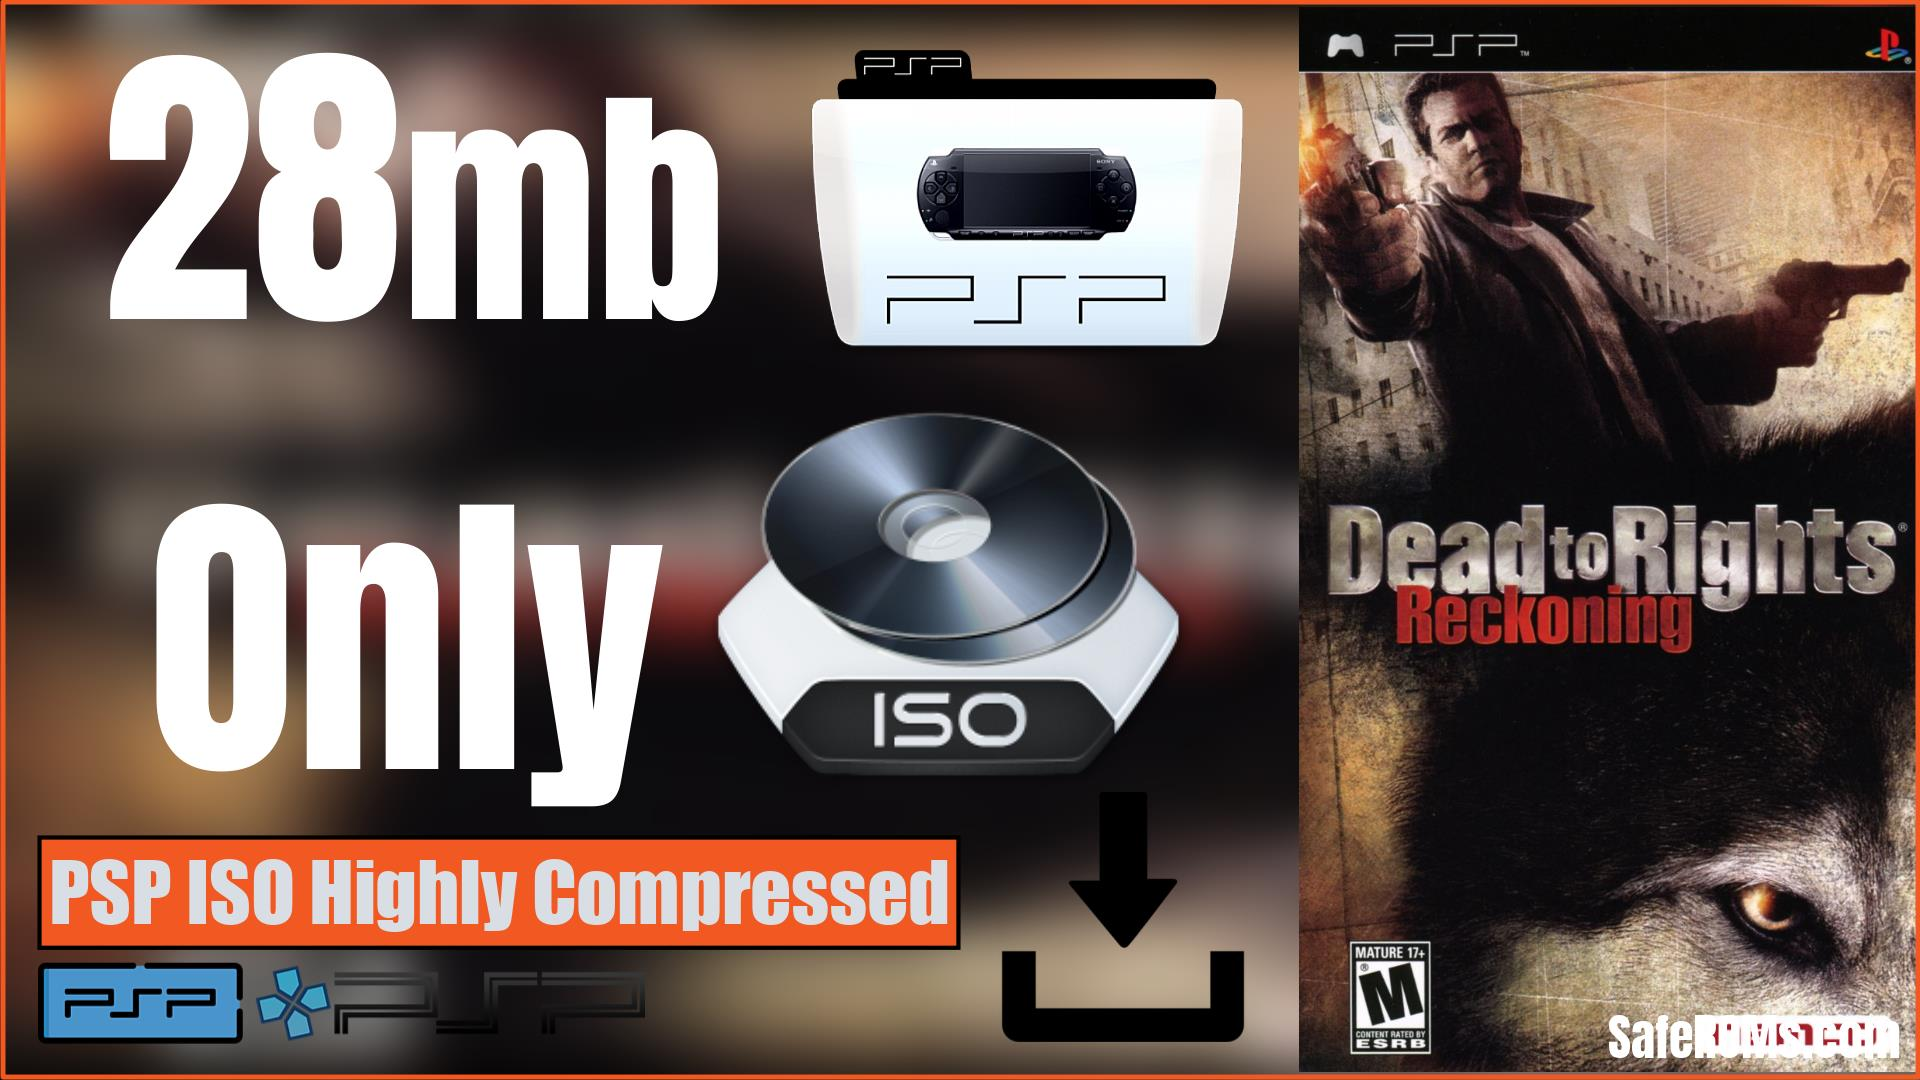 Dead to Rights Reckoning PSP ISO Highly Compressed Download